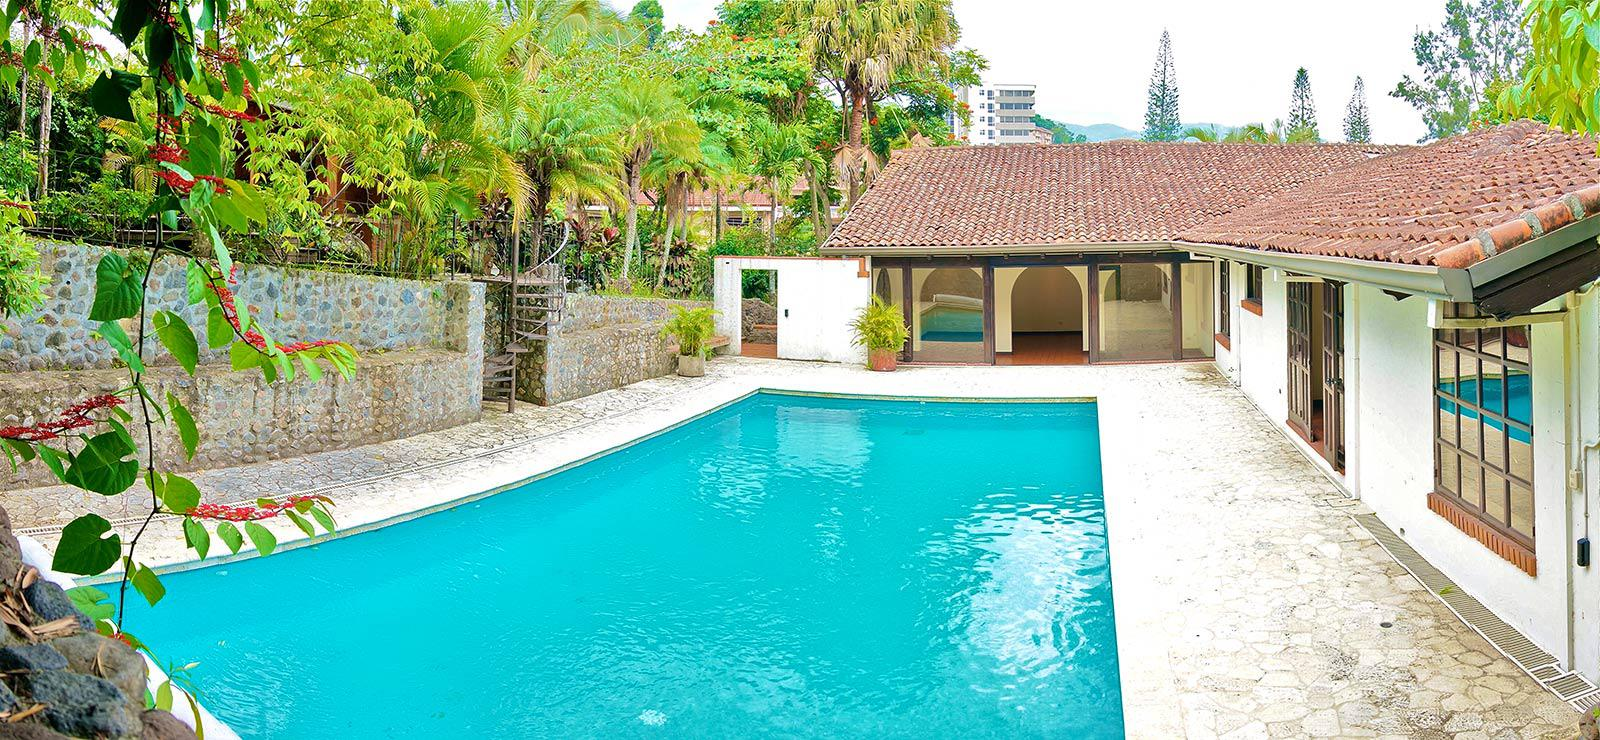 costa rica, one level home, for sale, in Escazu, swimming pool, 3 bedrooms, guest suite, studio apartment